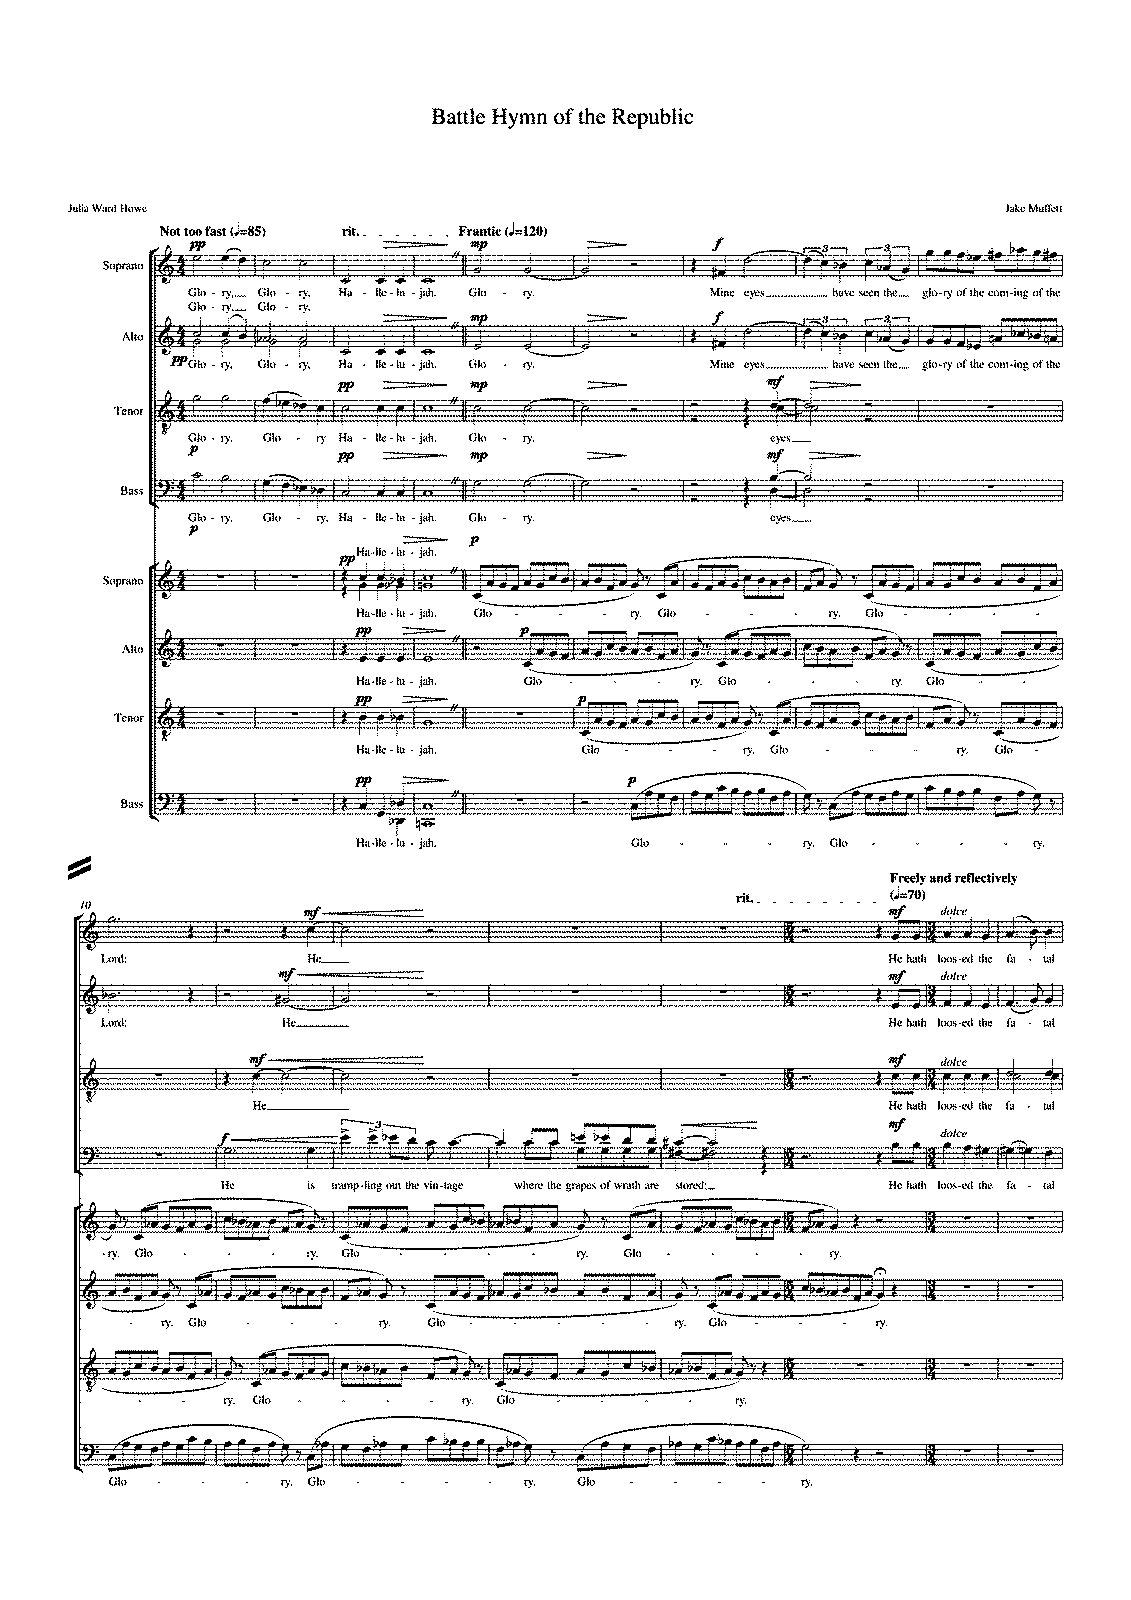 PMLP210776-Battle Hymn of the Republic - Muffett.pdf